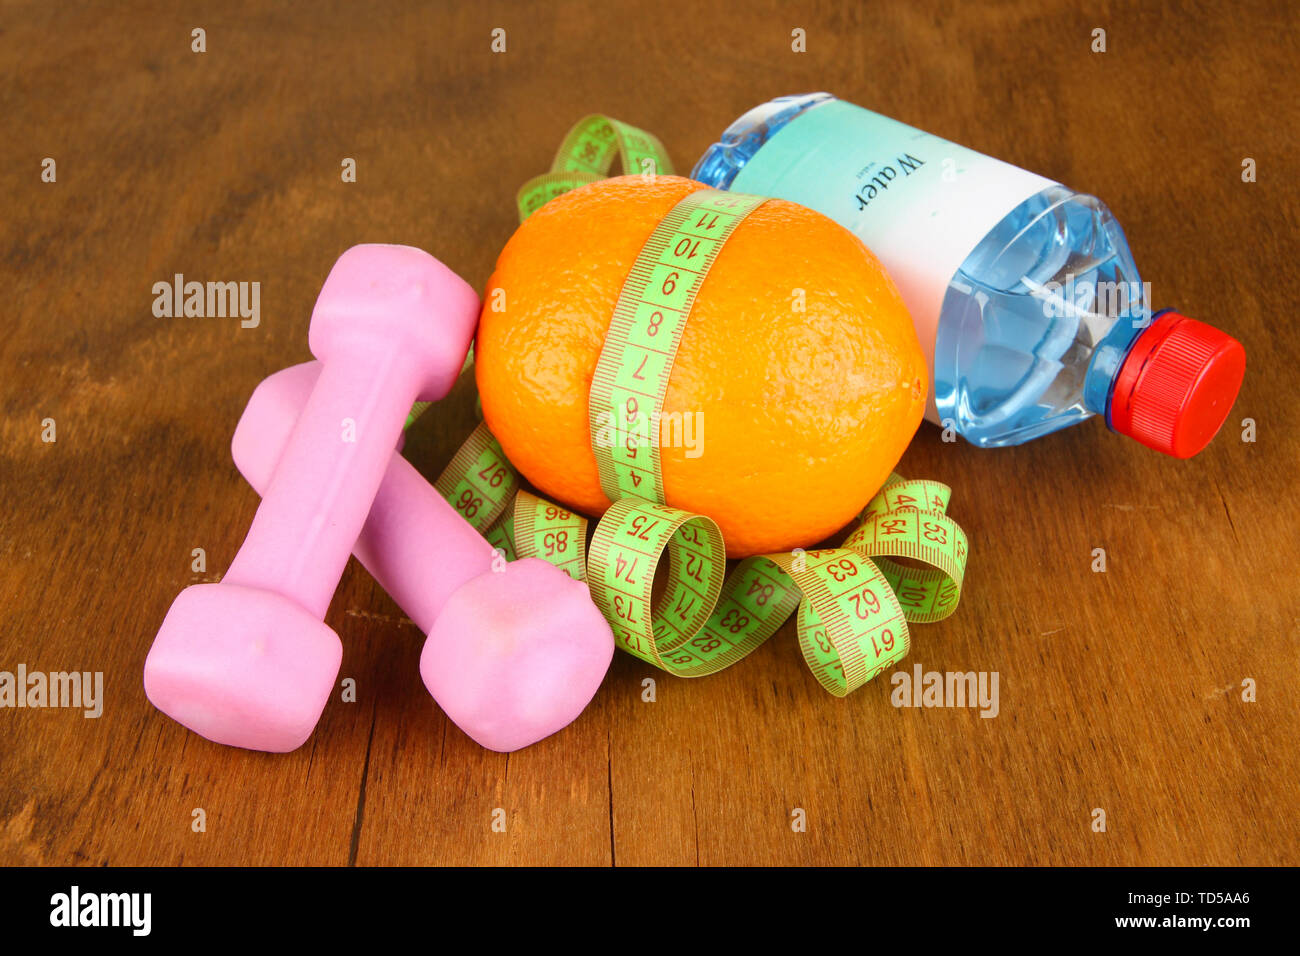 Orange with measuring tape,dumbbells and bottle of water, on wooden background - Stock Image